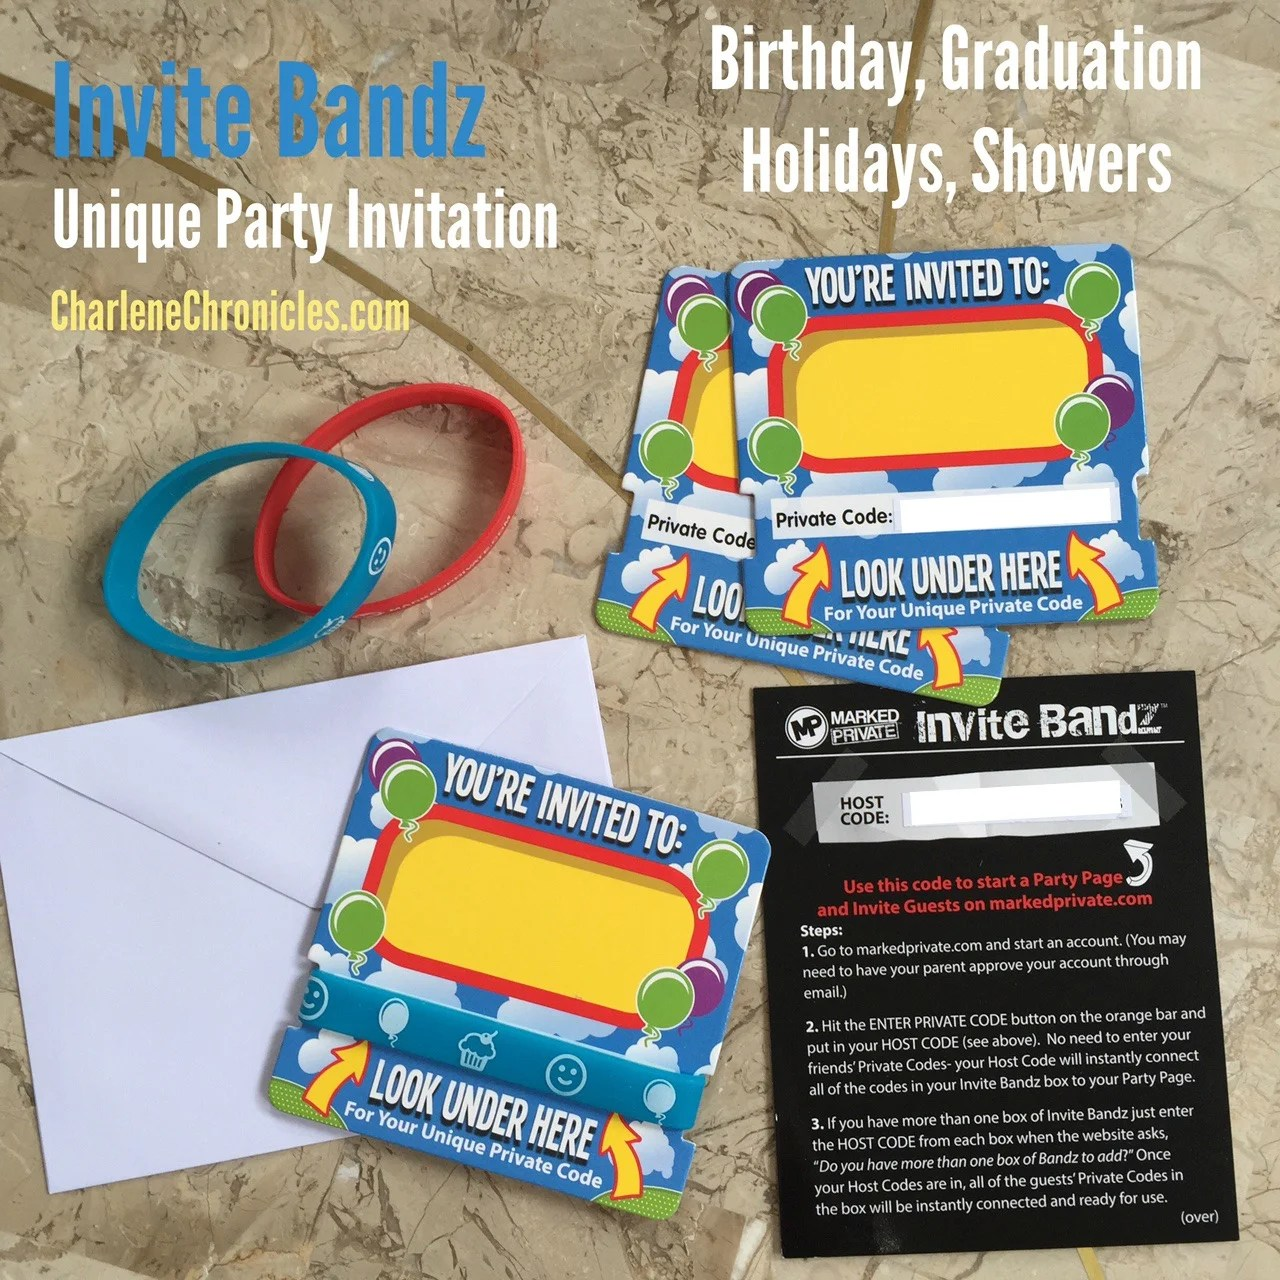 A Unique Party Invitation for Sure! - Charlene Chronicles